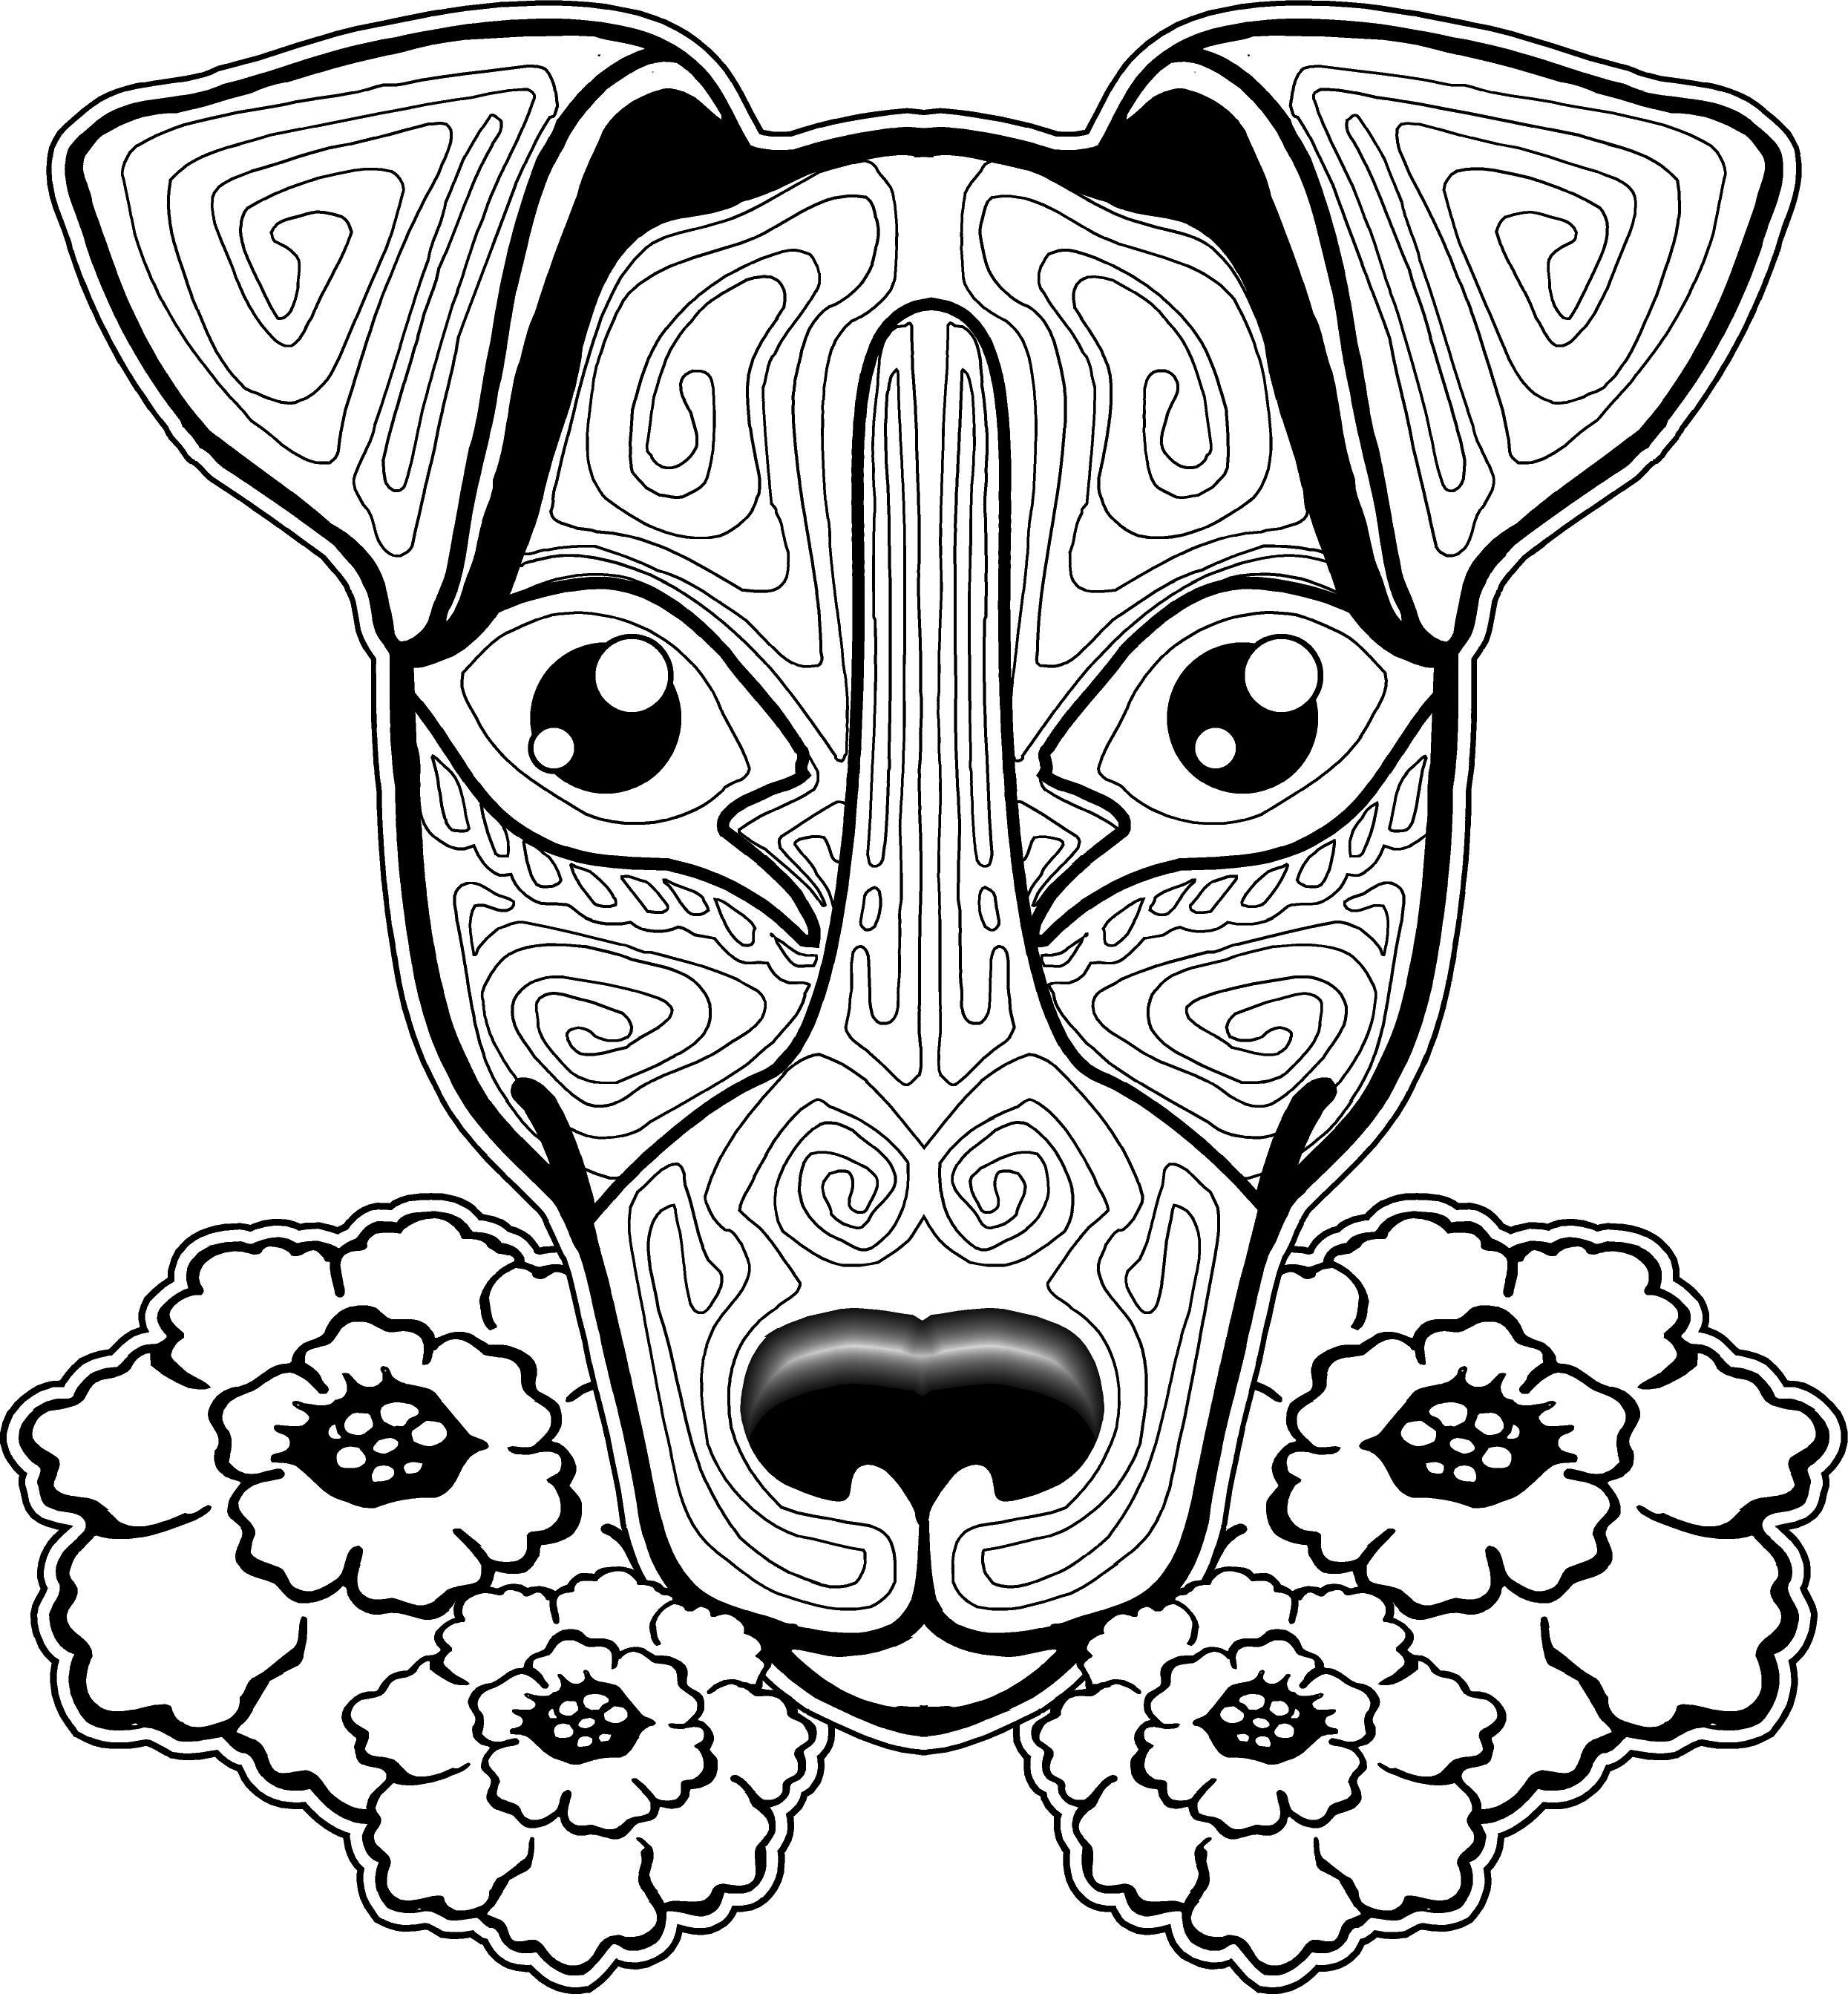 2490x2686 Dog Coloring Page, Dog Coloring Pages, Free Coloring Page, Free